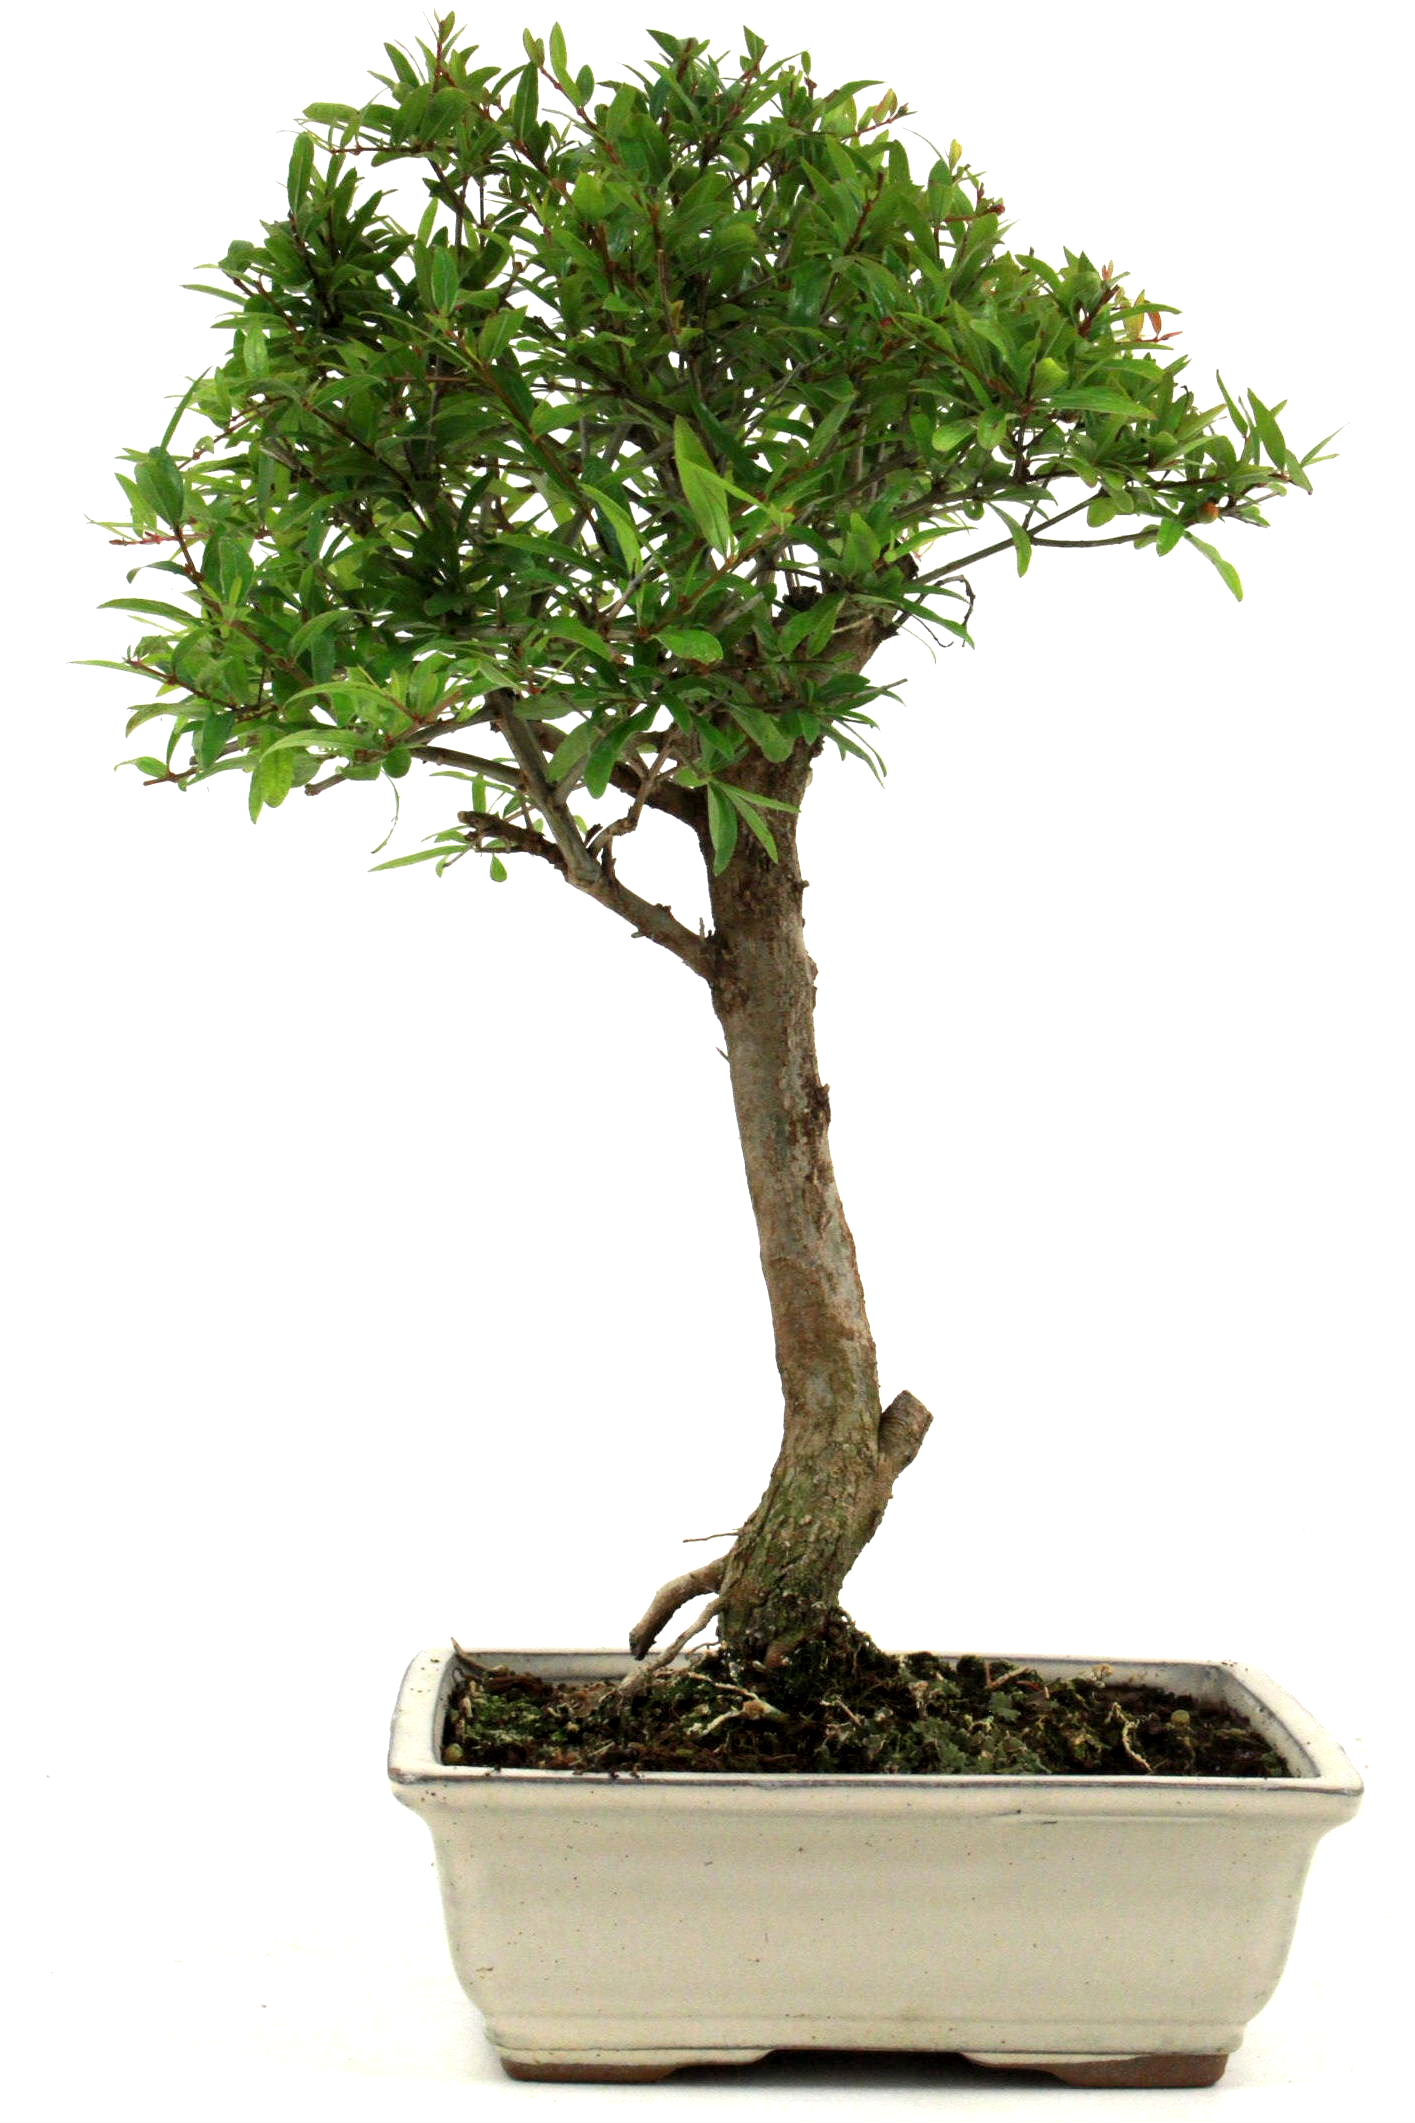 Bonsai granatapfel 35 40 cm 1915 bei oyaki bonsai kaufen for Bonsai onlineshop